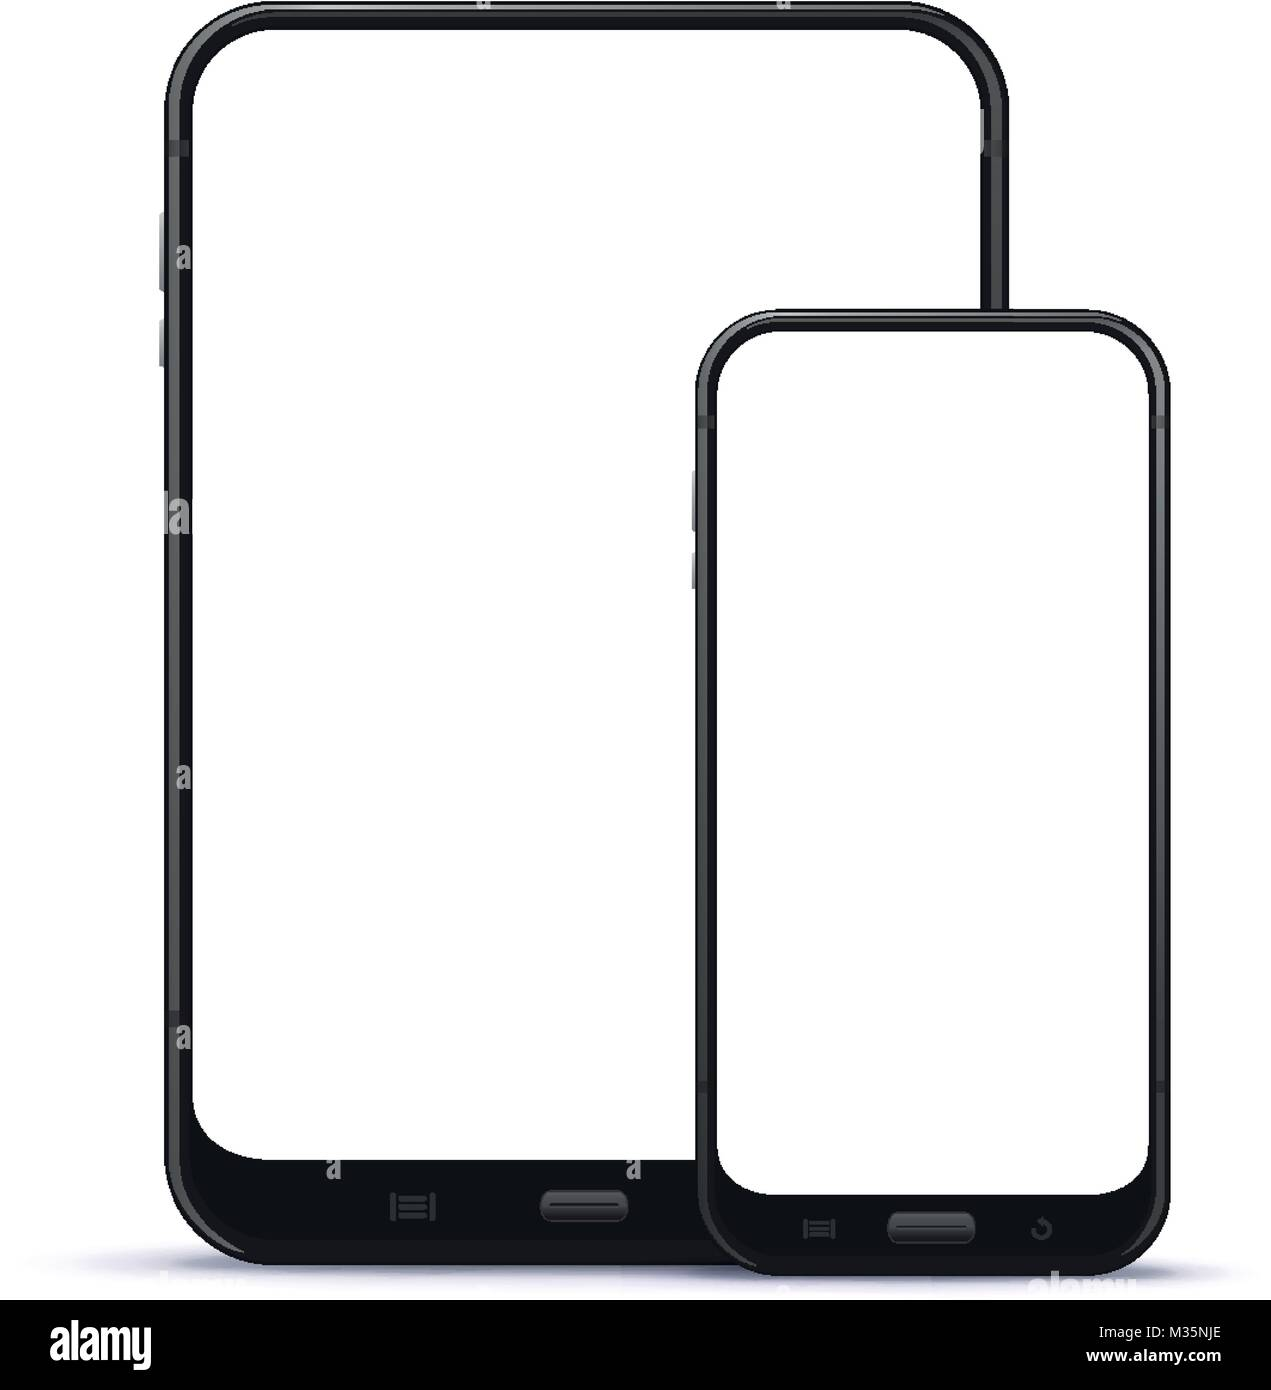 Black Mobile Phone and Tablet Computer Vector illustration - Stock Image